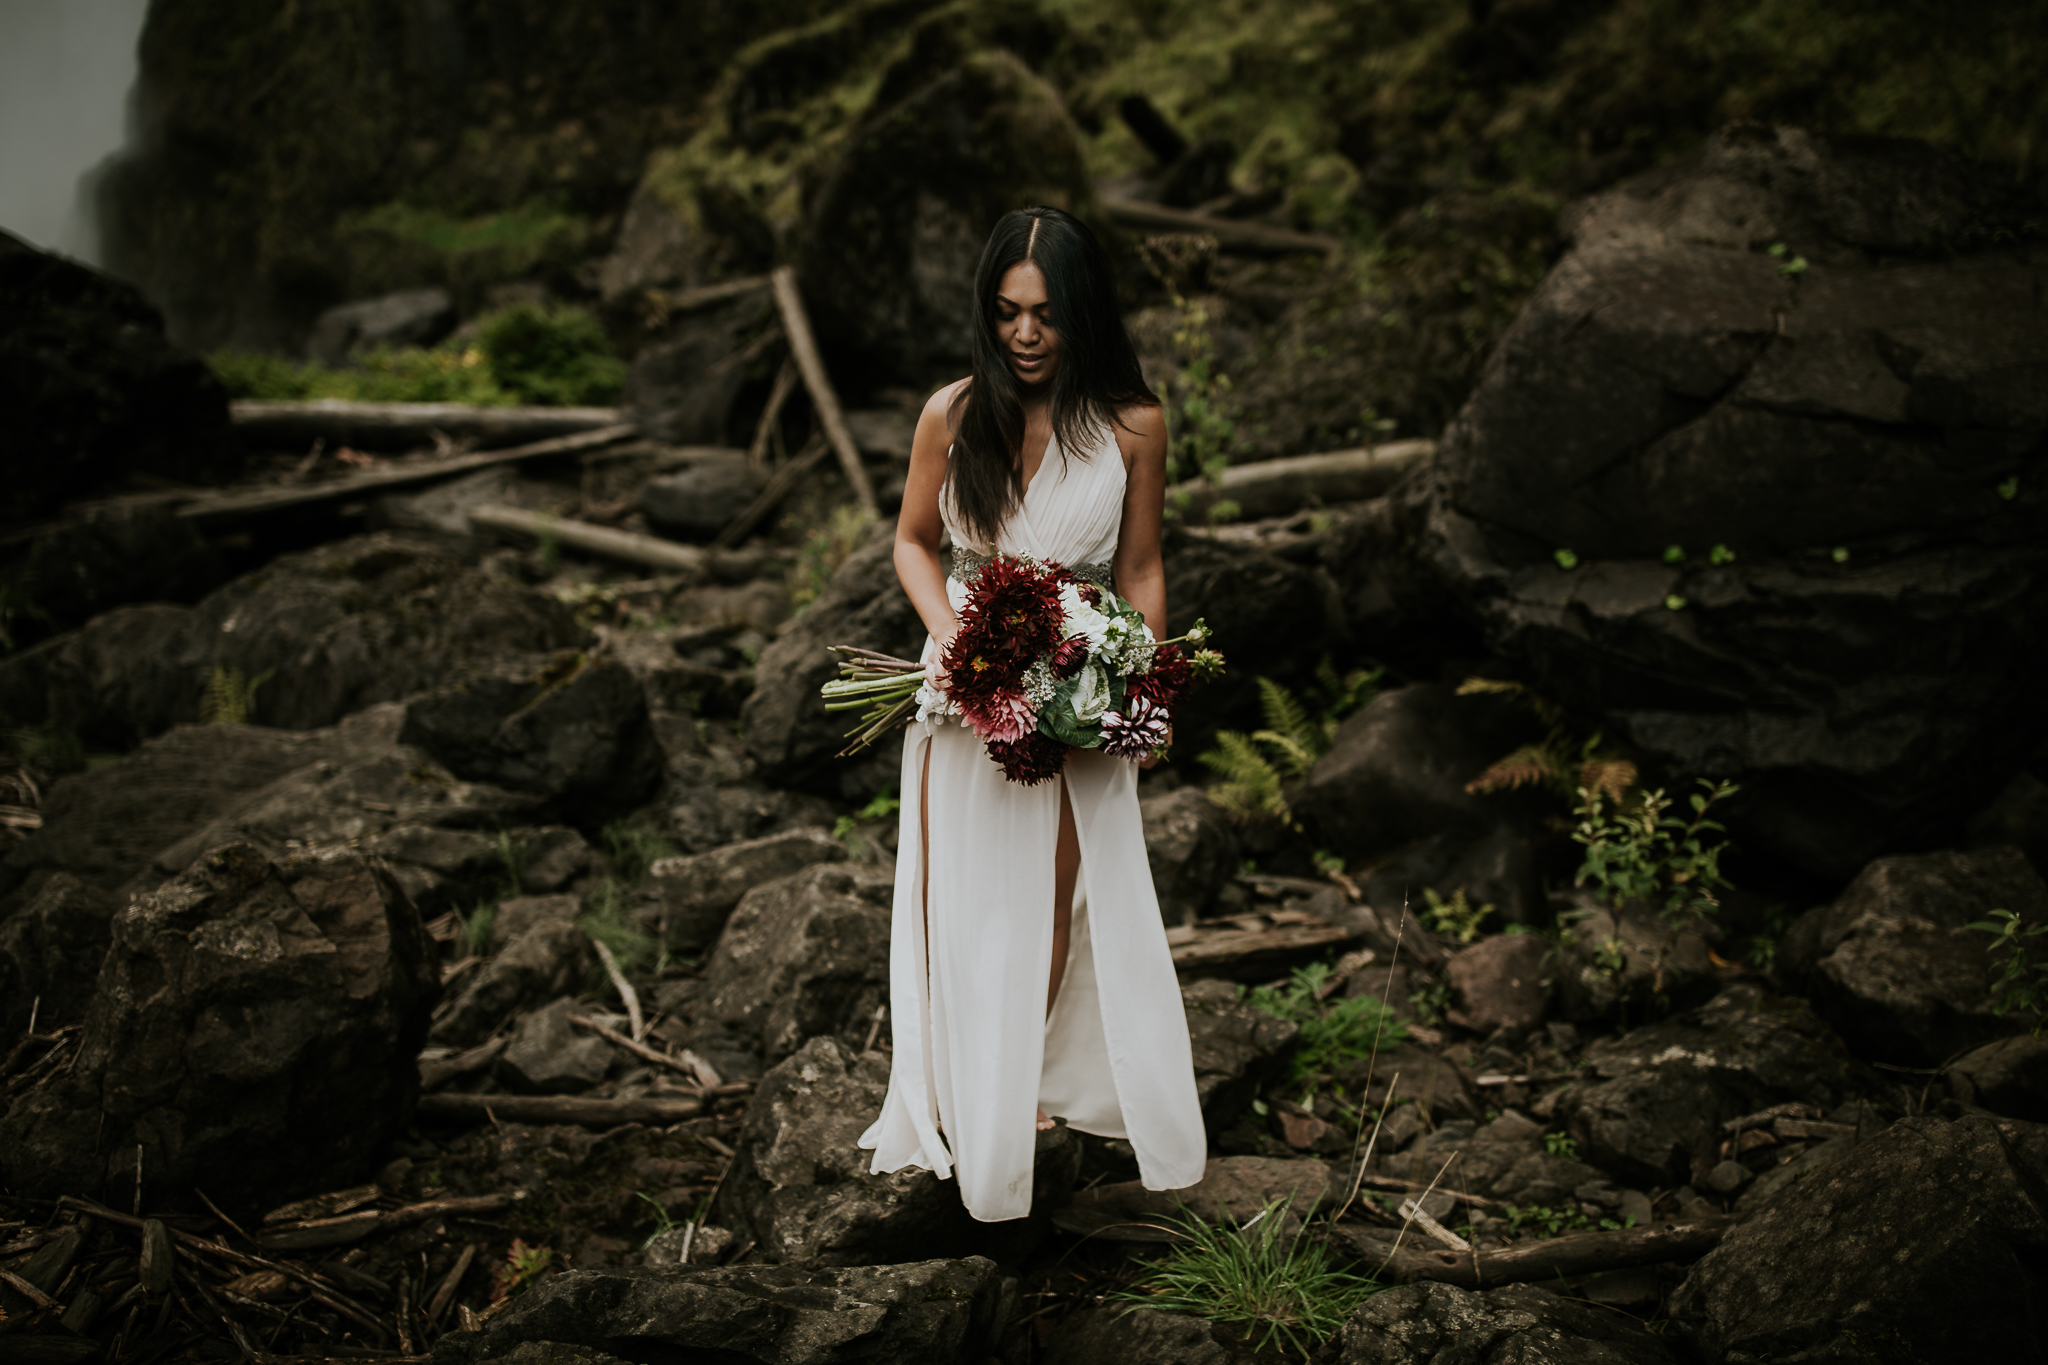 Adventurous bride eloping at Snoqualmie Falls